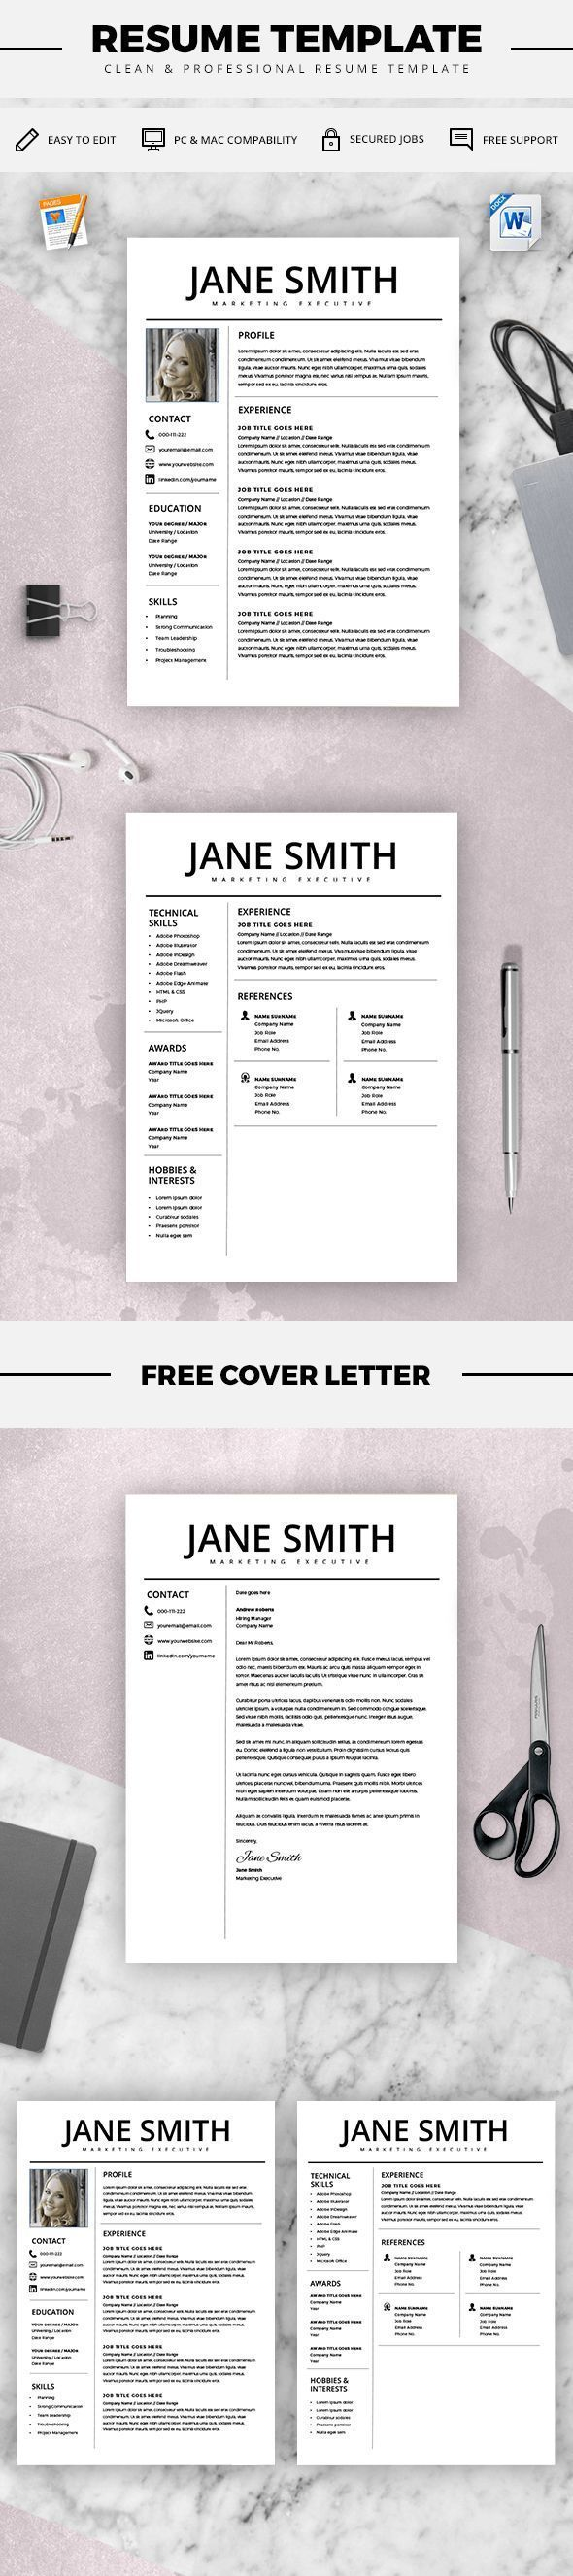 Professional Resume Template - MS Word Compatible - Best CV Template + Cover Letter - Mac / PC - Sample - Instant Download